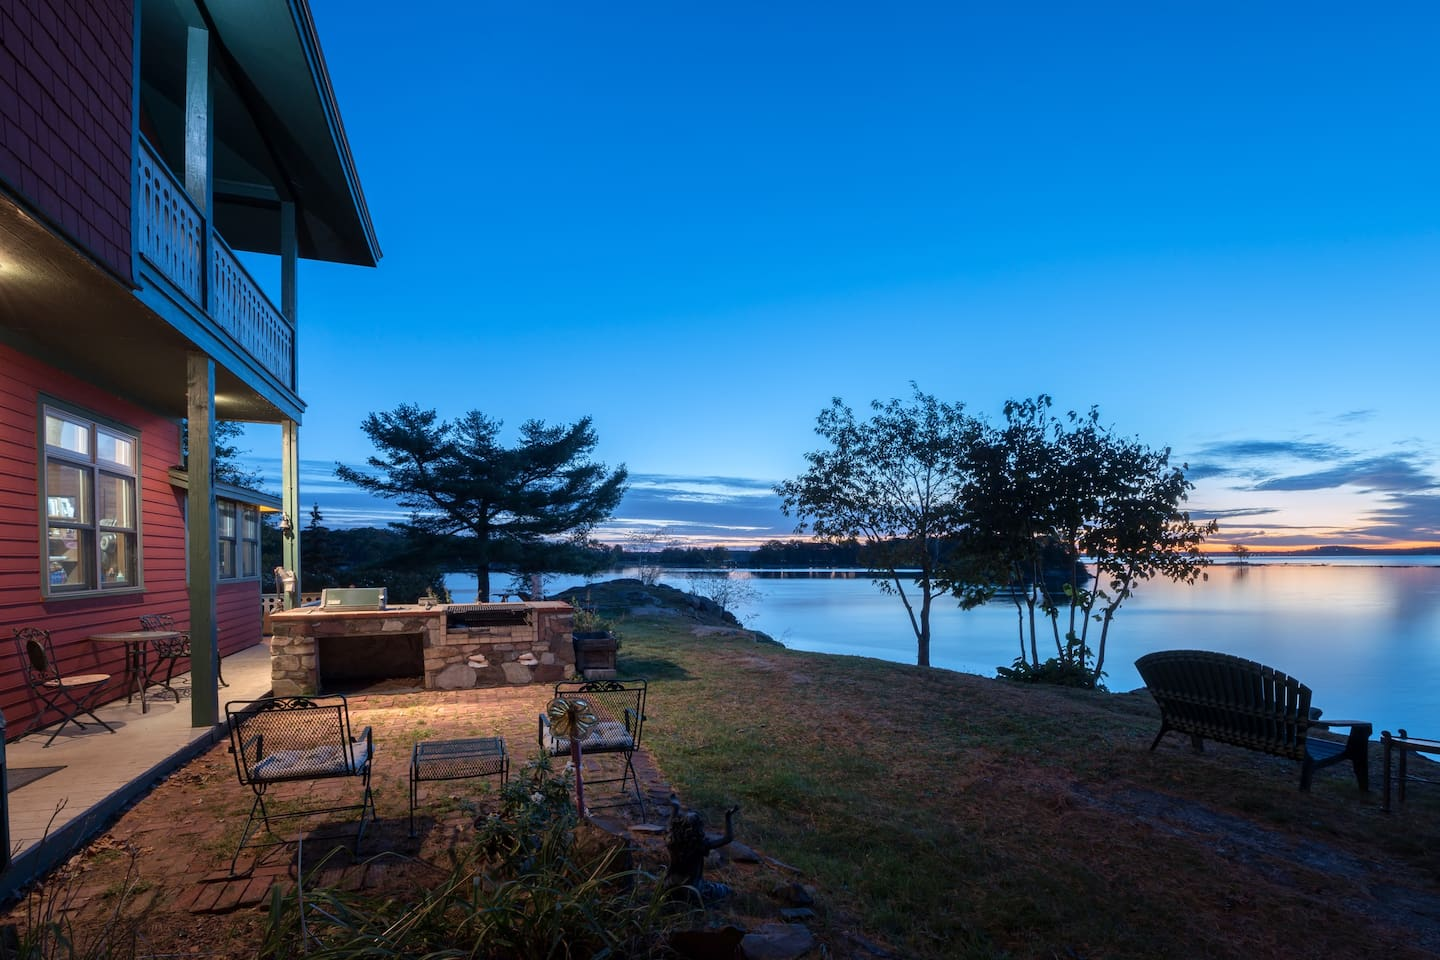 Whiskey Island - Islands for Rent in Clayton, New York, United States